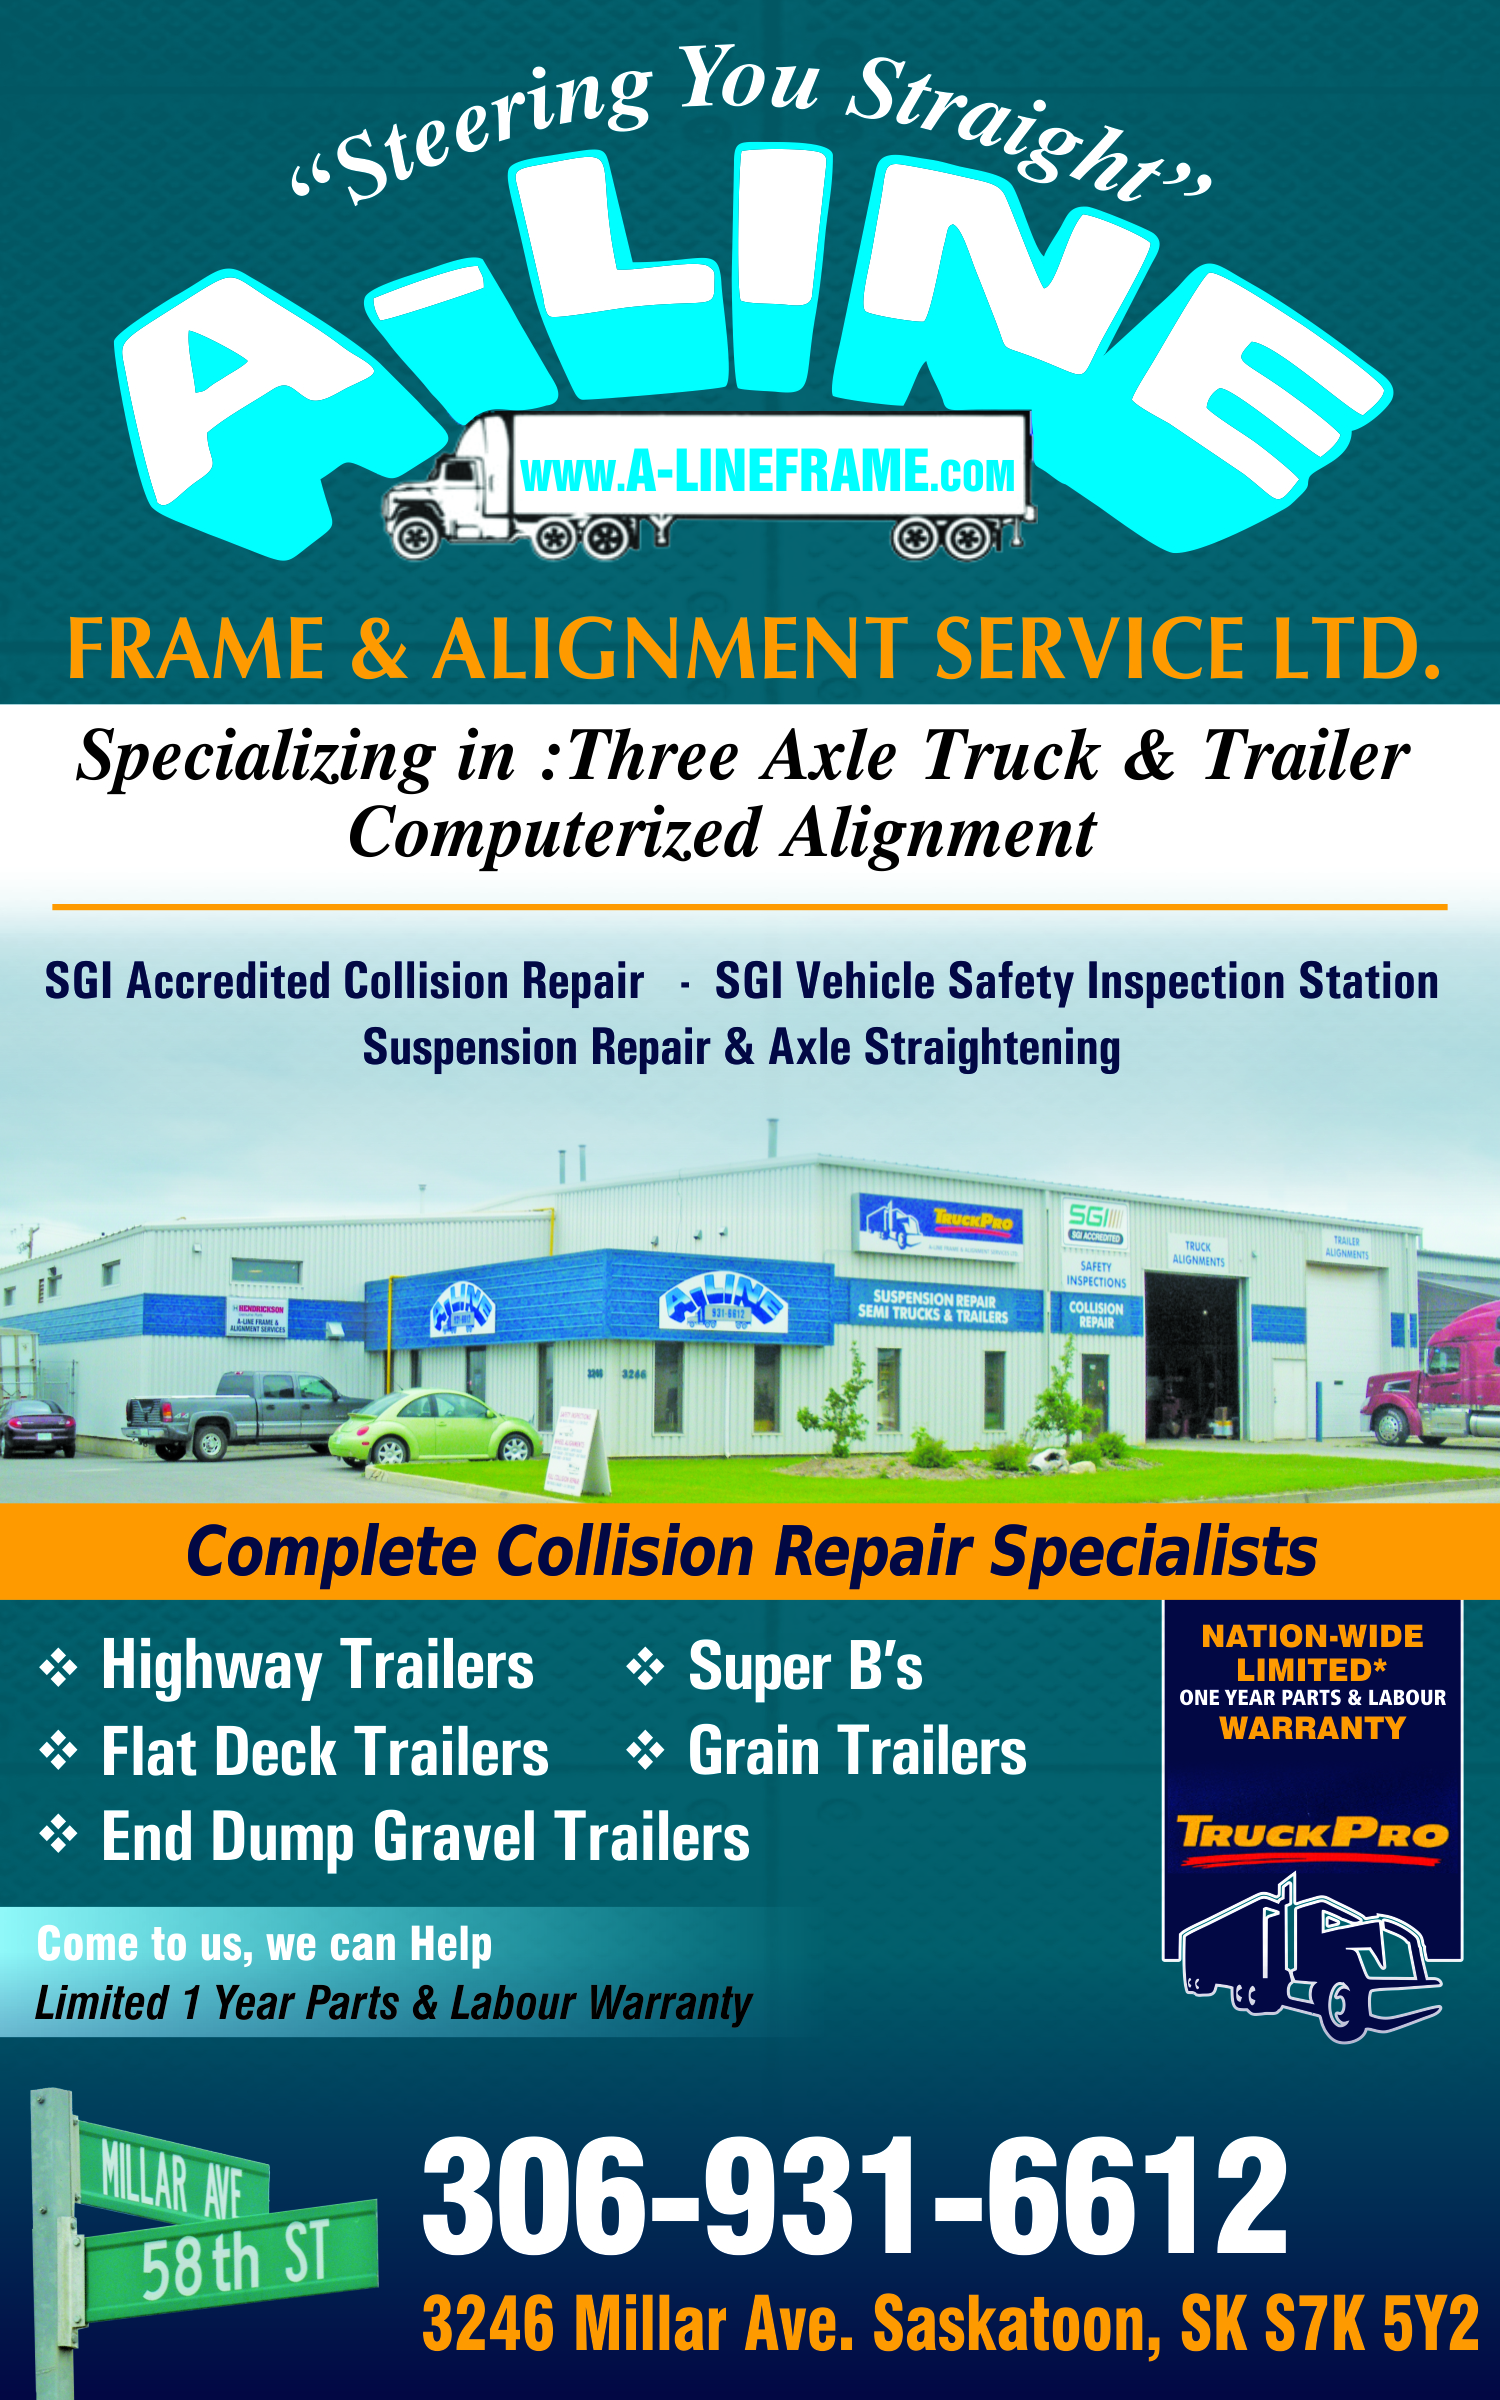 a-line-frame-alignment-service-ltd-WeAbmZn.jpeg